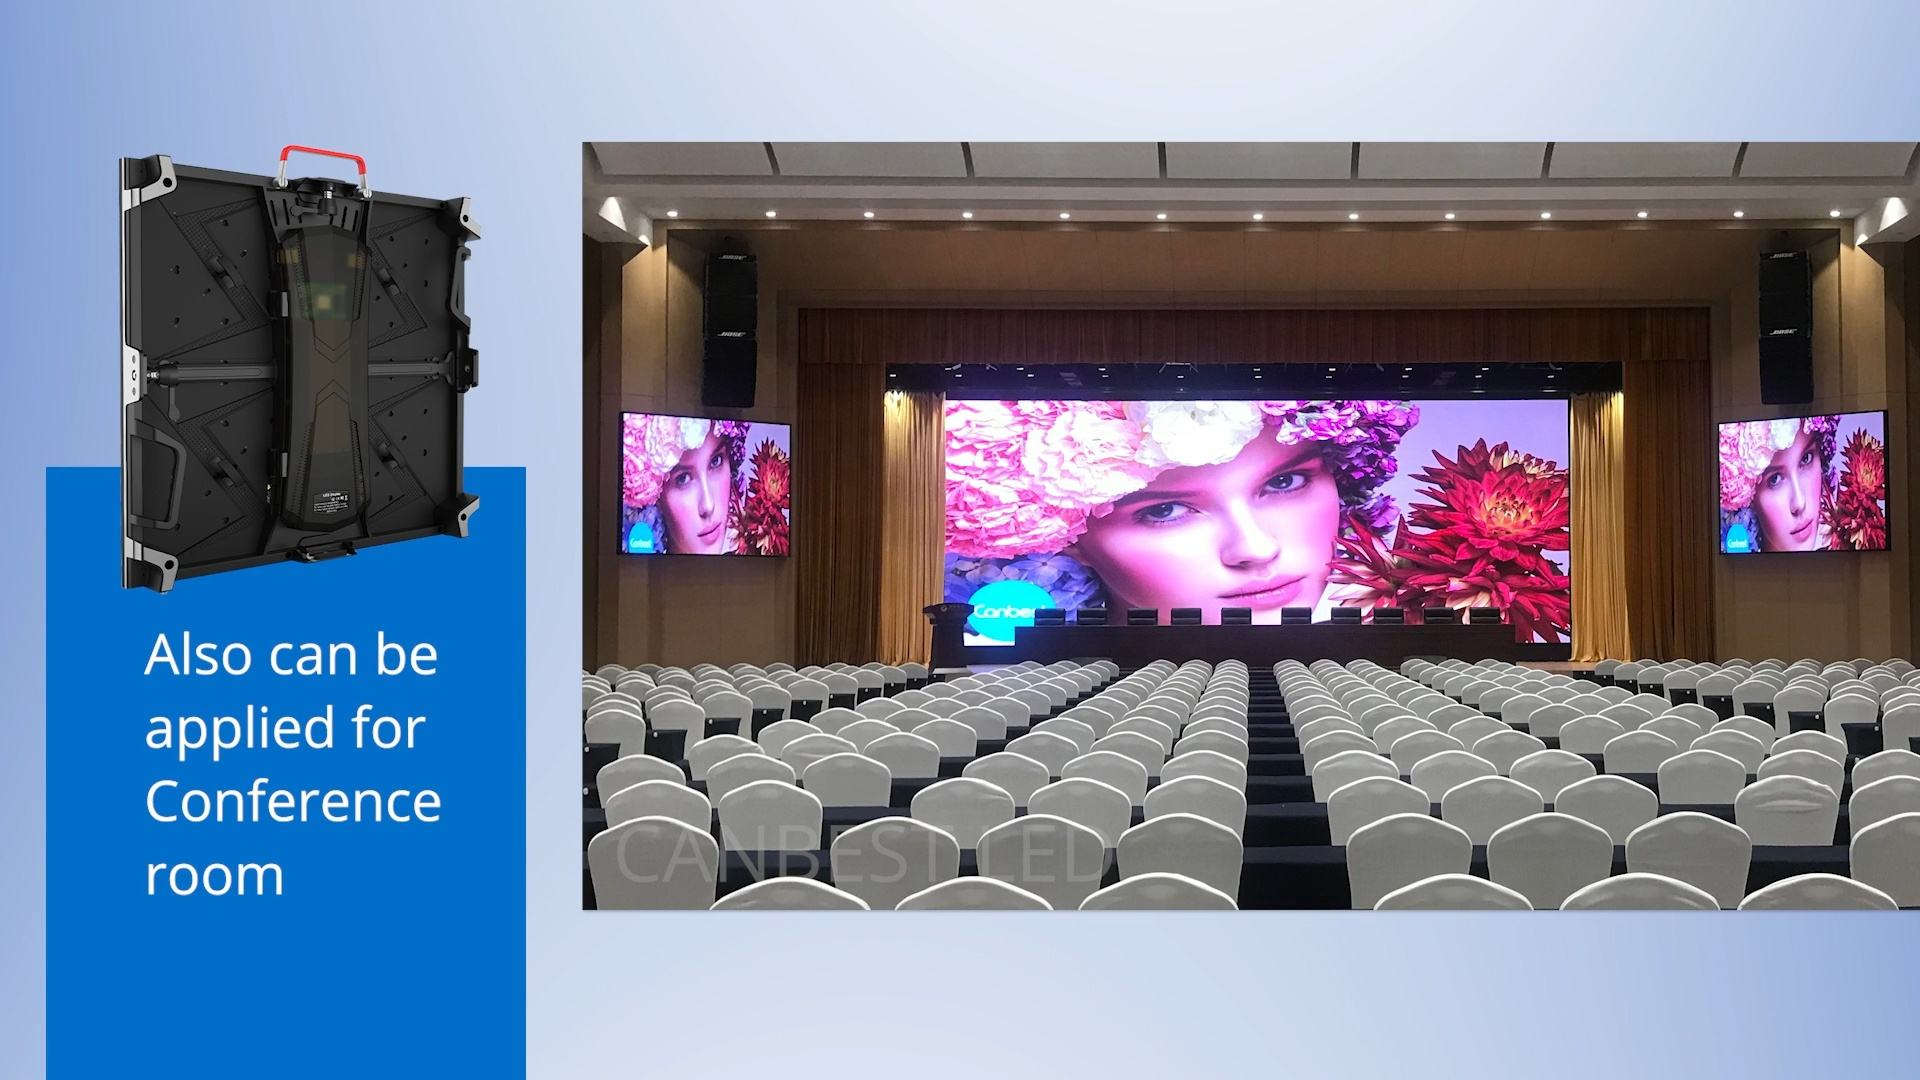 Packaging Customization Display Led Indoor Led Display Signs Church Video Wall Signs P 2.5 Indoor Display Nationstar Gold P2.5 Led Screen Stage Backdrop For Concert